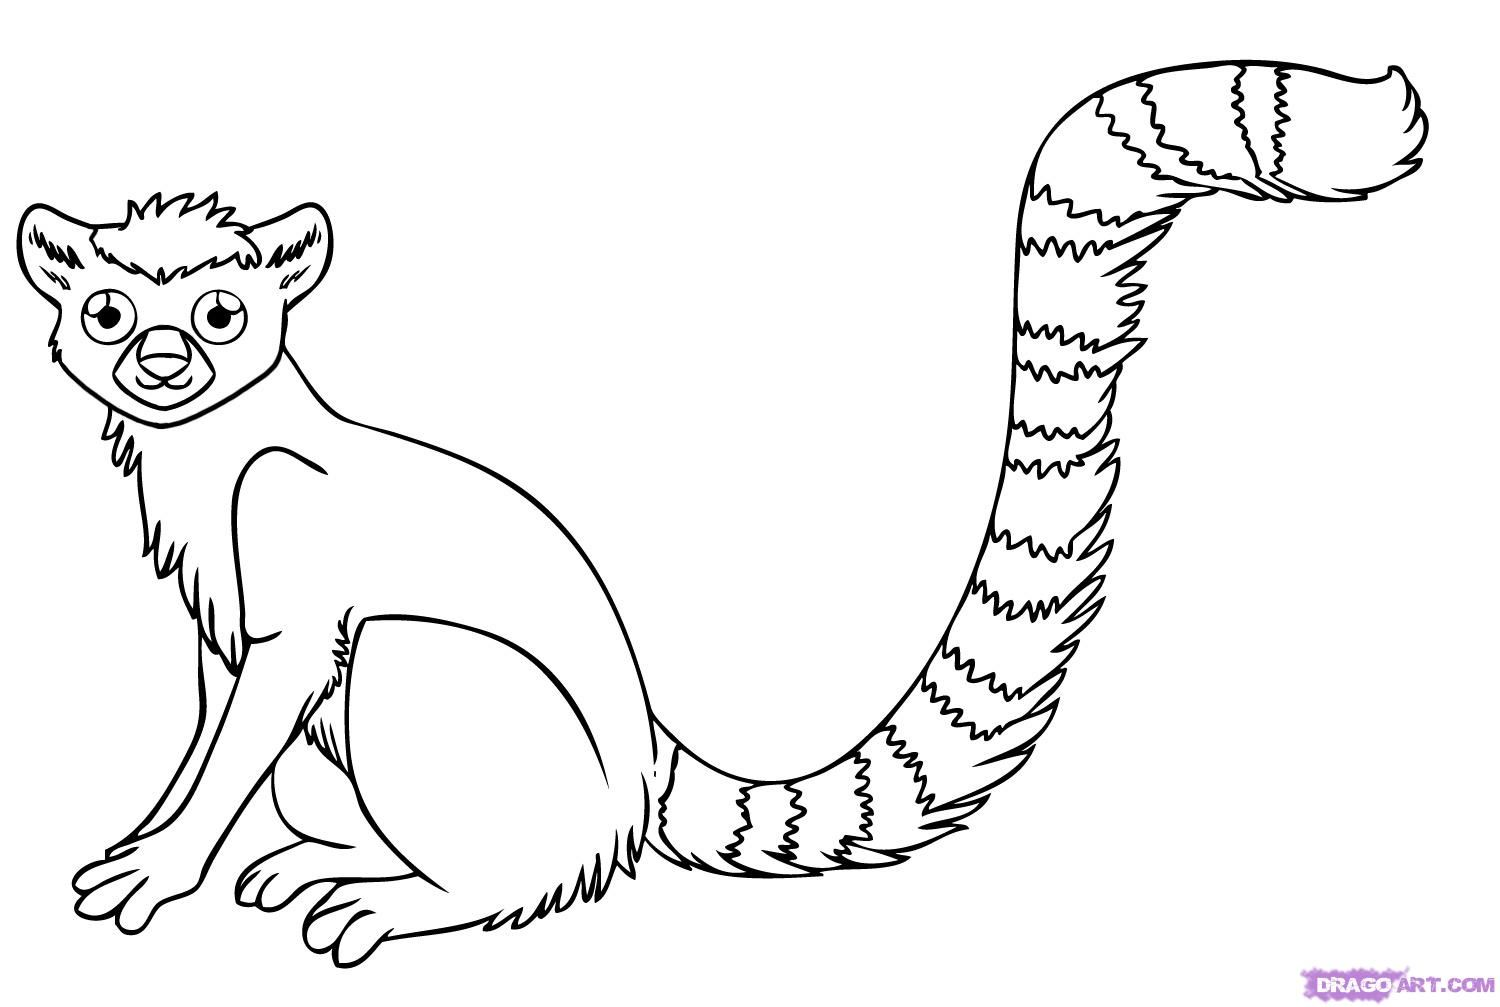 How to draw a lemur step by step